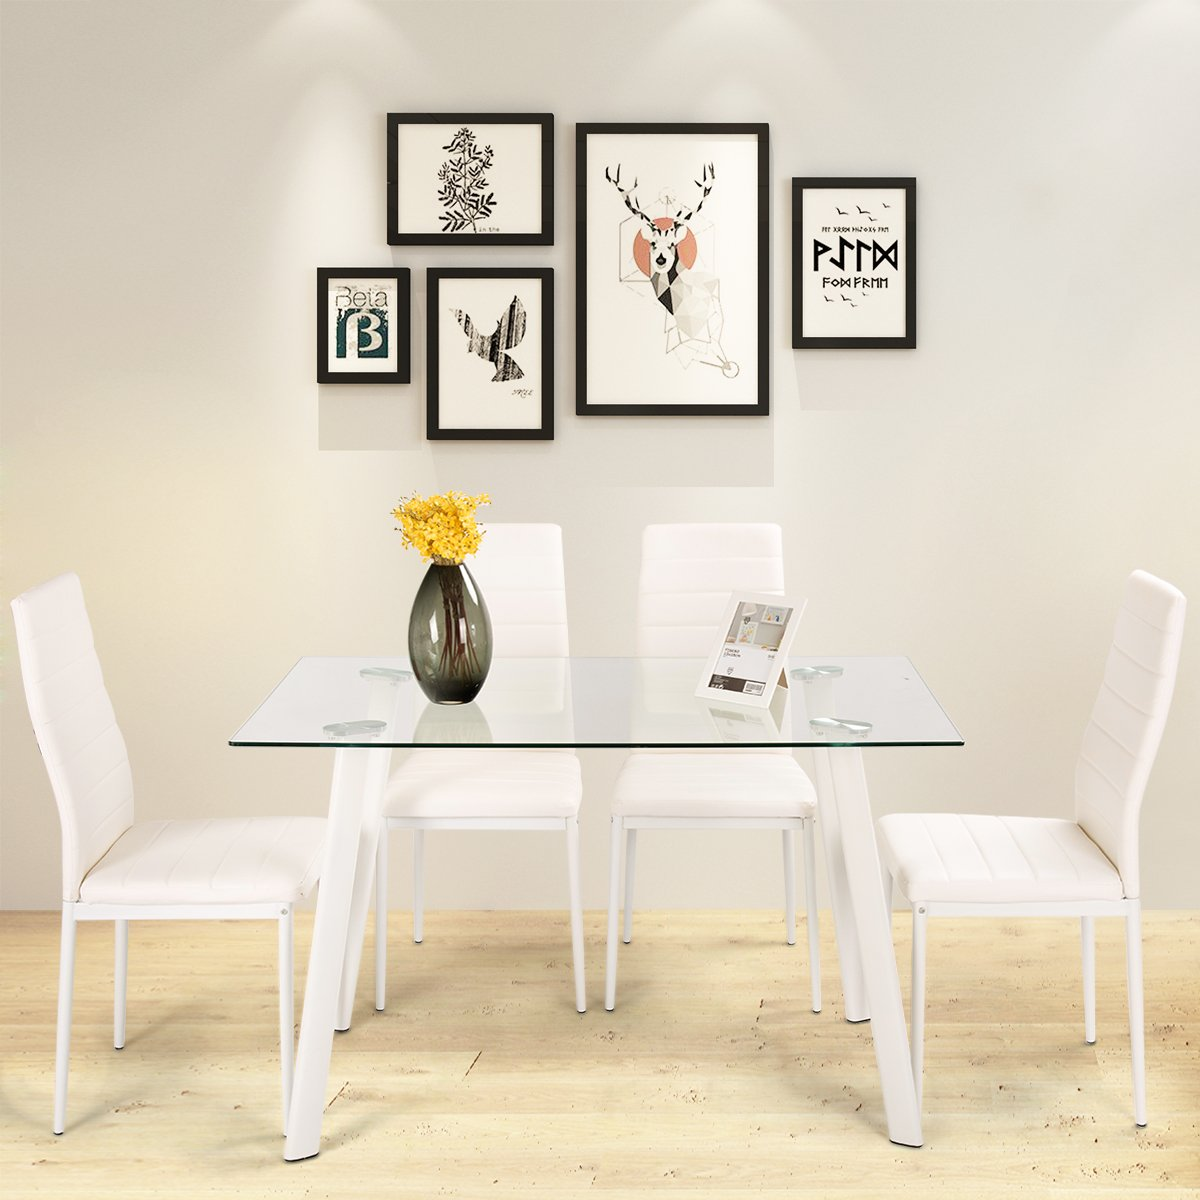 Costway Glass Dining Table Chairs Set - Tempered Glass Table and 4 Faux Leather Padded Chairs Furniture Set Kitchen Home Indoor 5PCS (White)